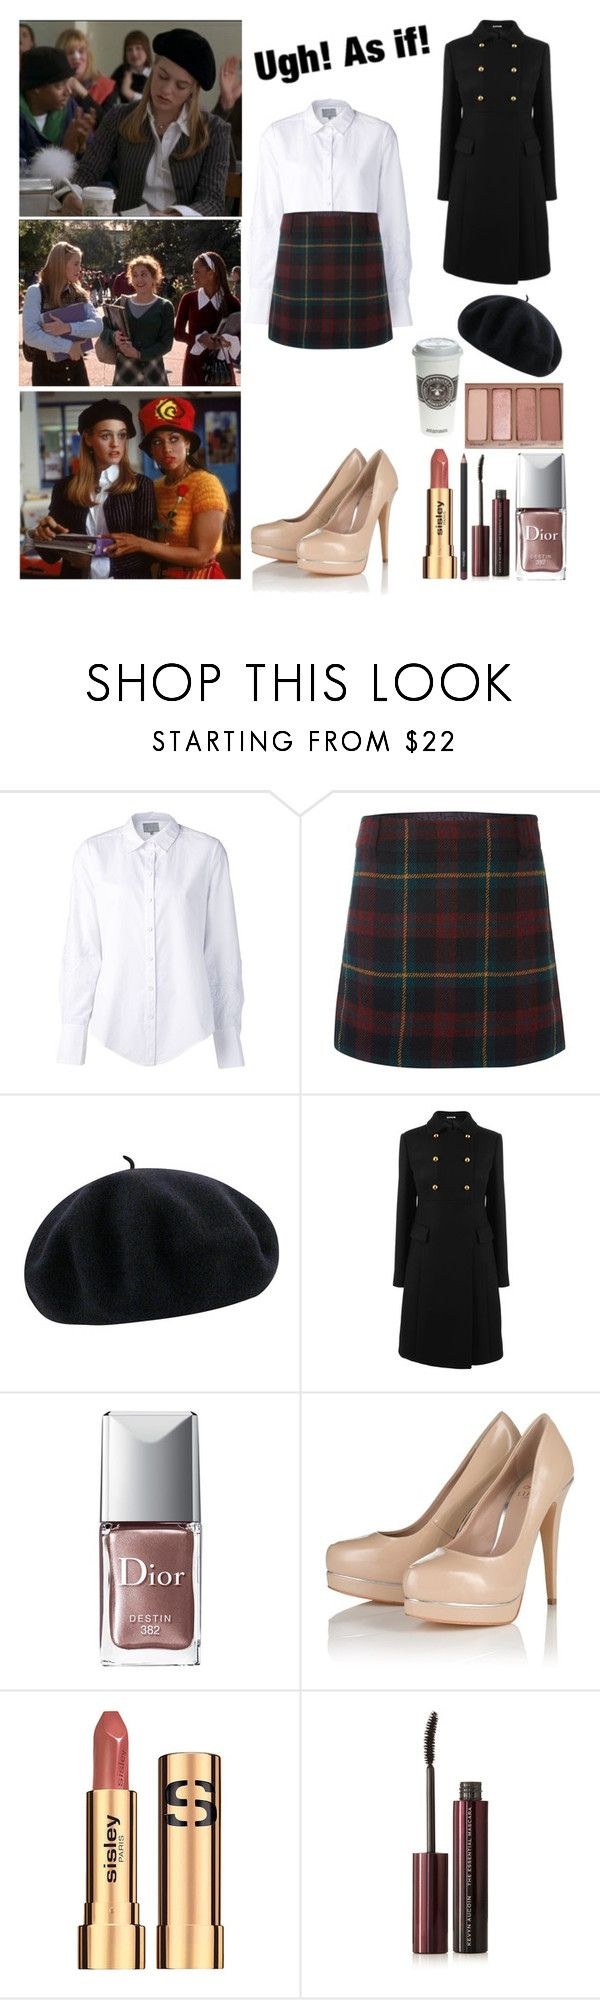 """Clueless : Cher Horowitz ♡"" by shanelle-khl ❤ liked on Polyvore featuring beauty, Maiyet, Polo Ralph Lauren, Betmar, Miu Miu, Urban Decay, Christian Dior, Lipsy, Sisley Paris and M.A.C"